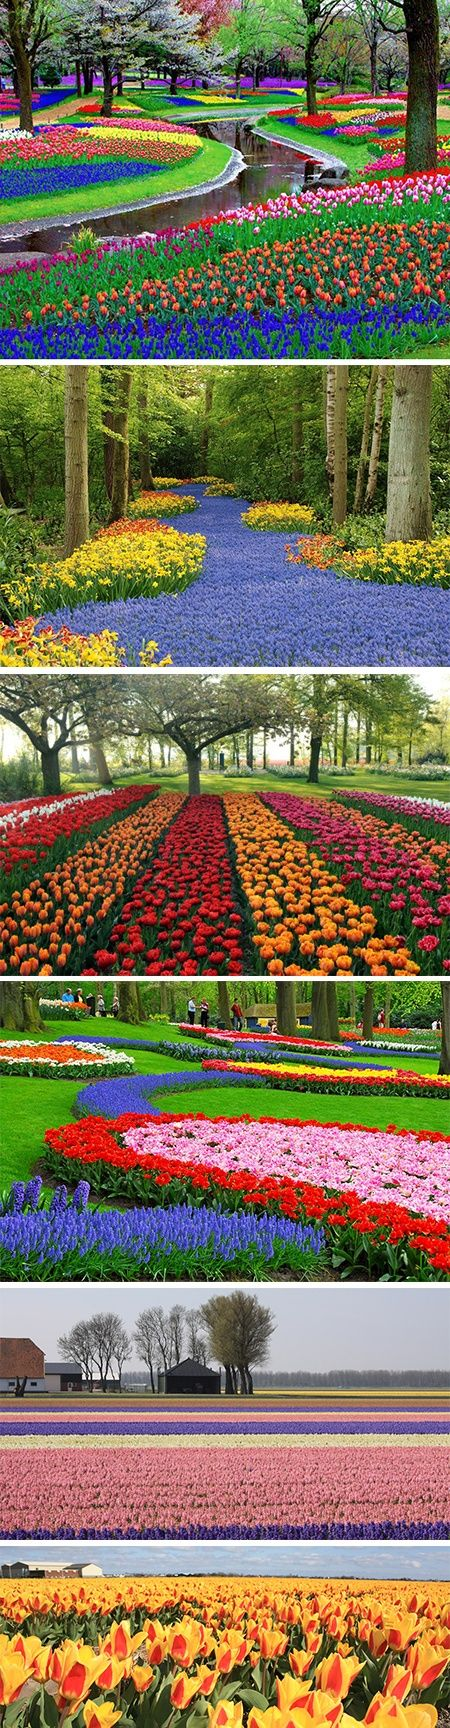 "Keukenhof Garden, Amsterdam ""The Largest Flower Garden in the World""      ........................................................ Please save this pin... ........................................................... Because For Real Estate Investing... Visit Now!  http://www.OwnItLand.com"